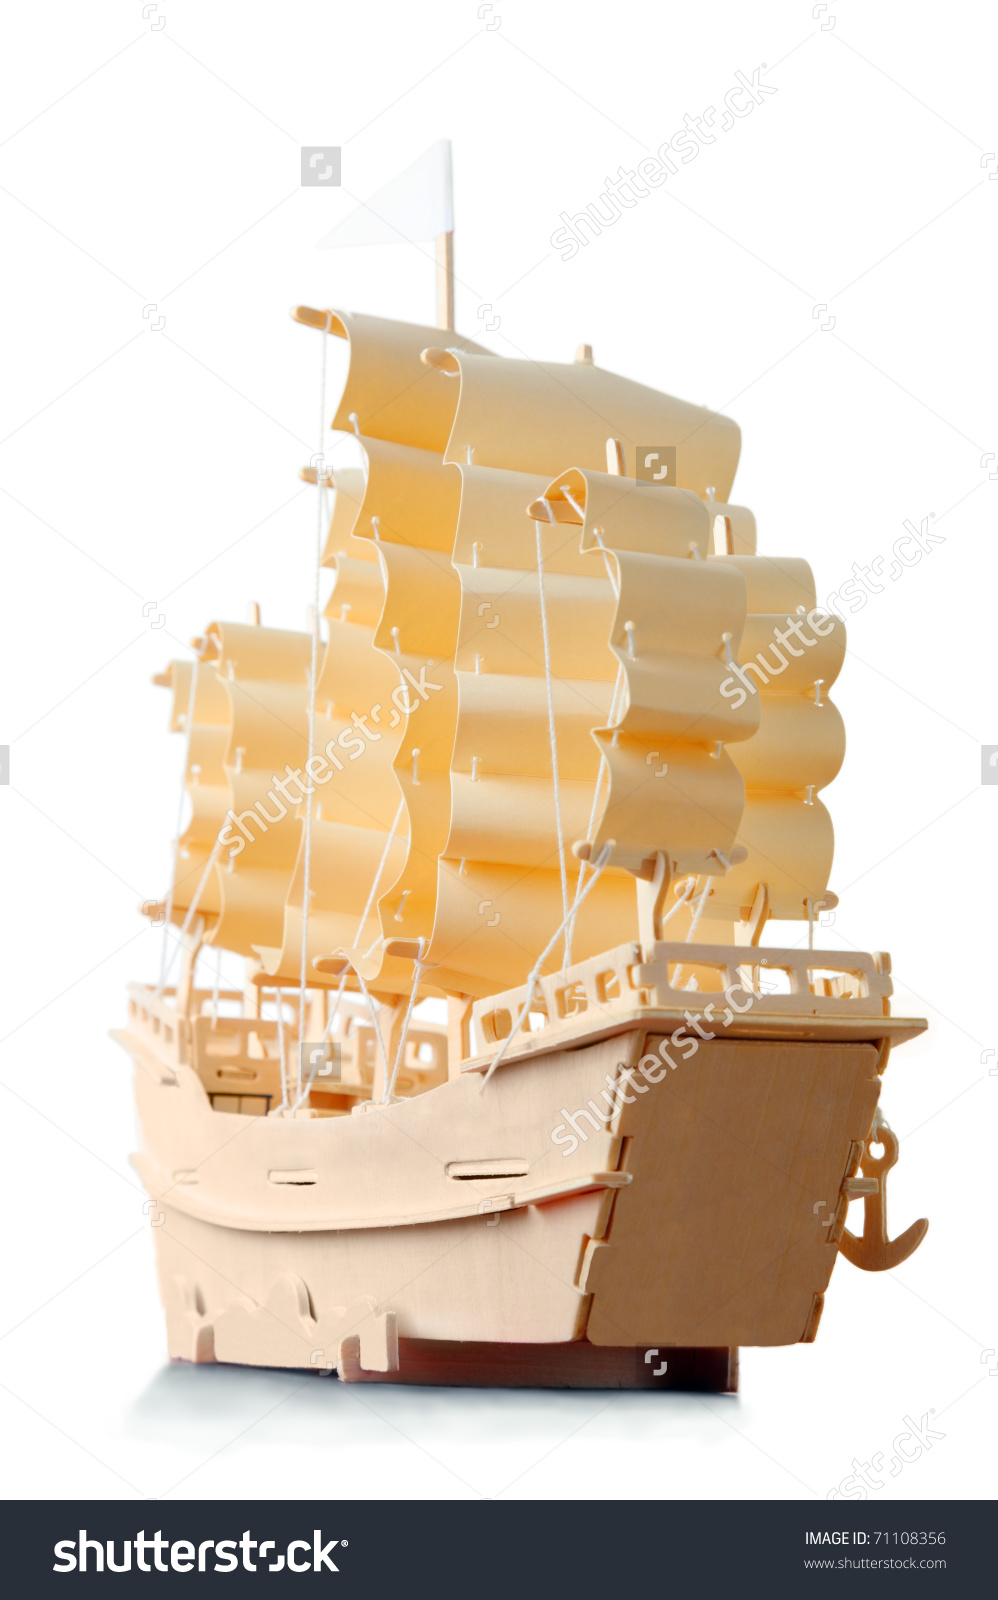 Homemade Wooden Ship With Paper Sails And Flag, View From Stern.